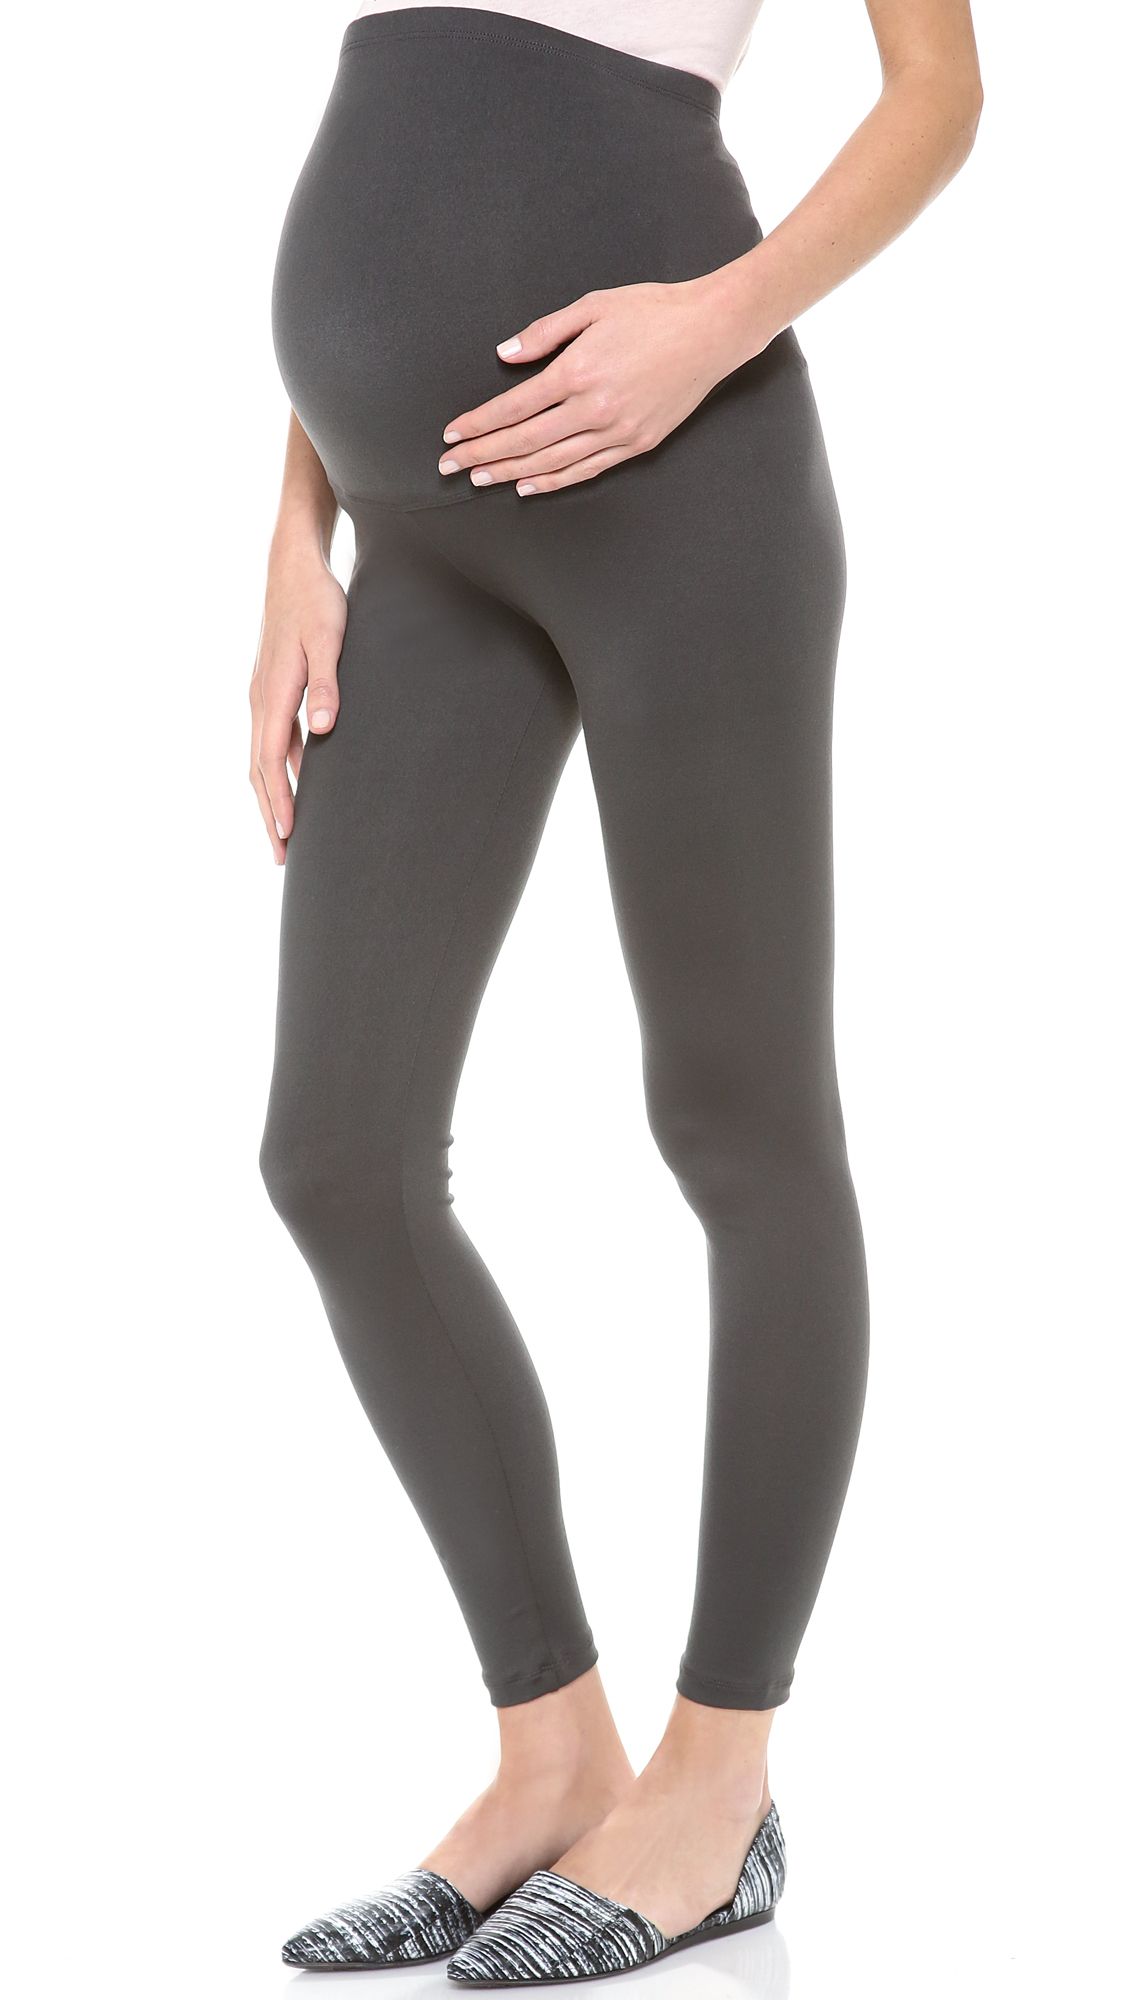 It's the saving grace of maternity wear: the legging. When you have officially outgrown your favorite non-maternity pair of classic black leggings, it's time to move on to a new version made specifically to fit your new baby bump.